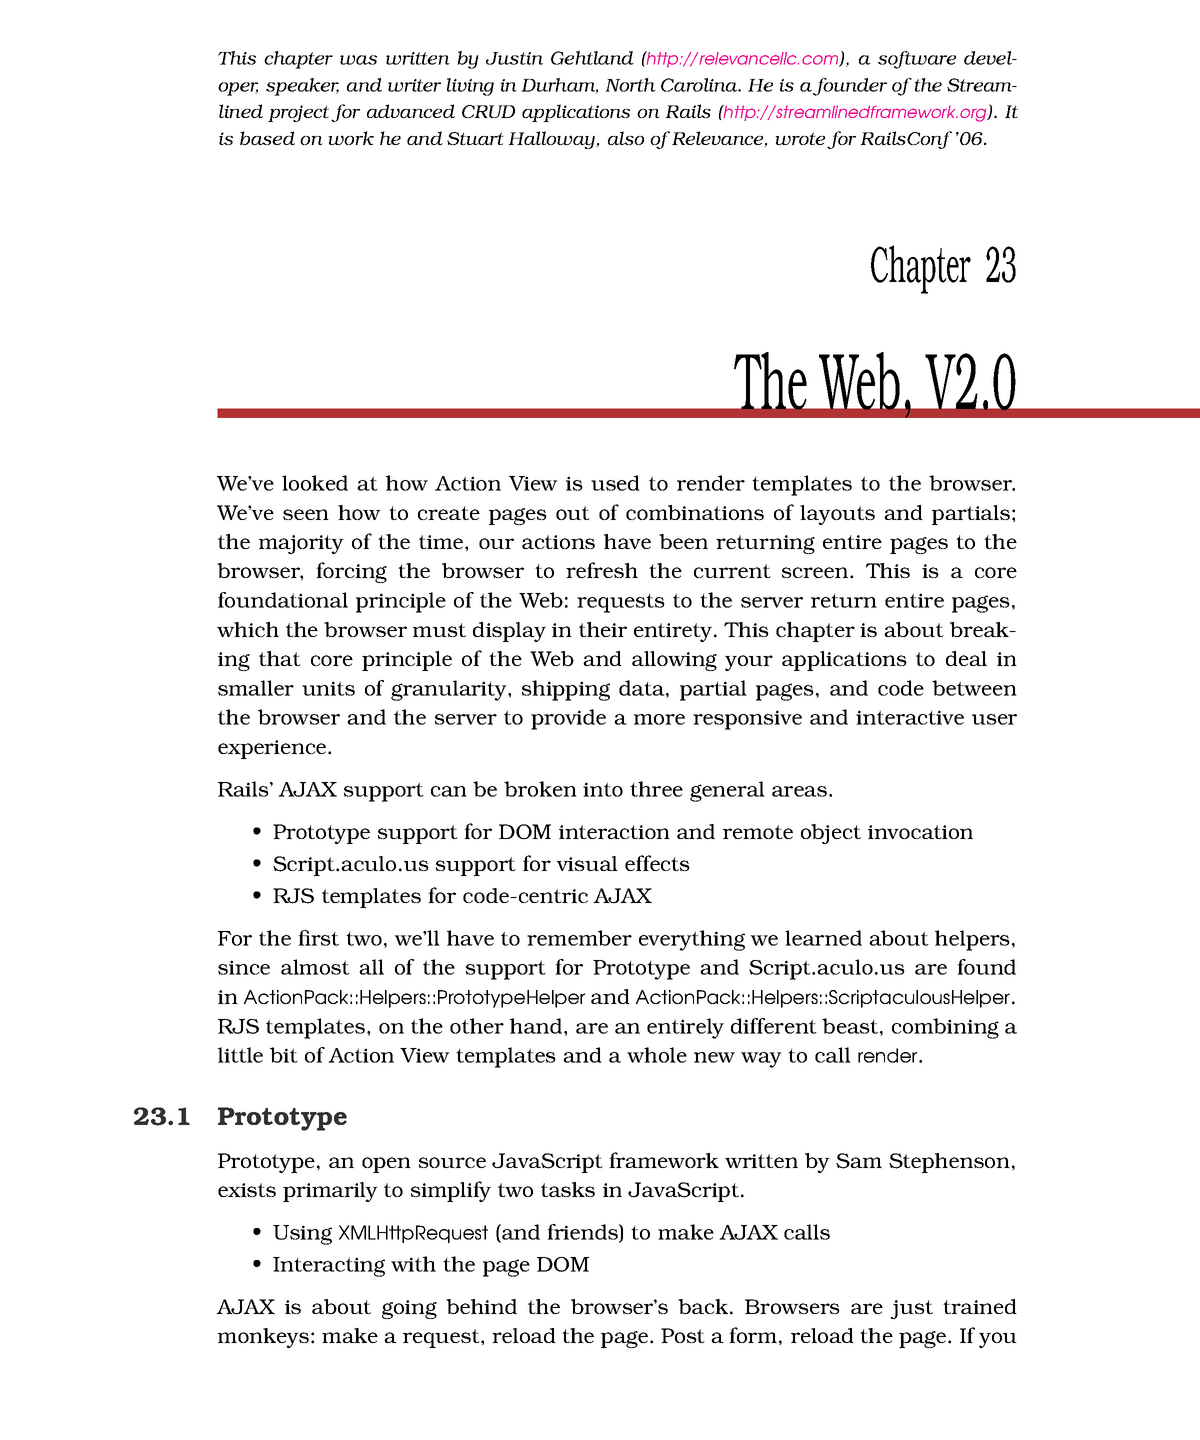 Chapter 23 - The Web, V2 - The Web, V2 0 - EDA397: Agile development